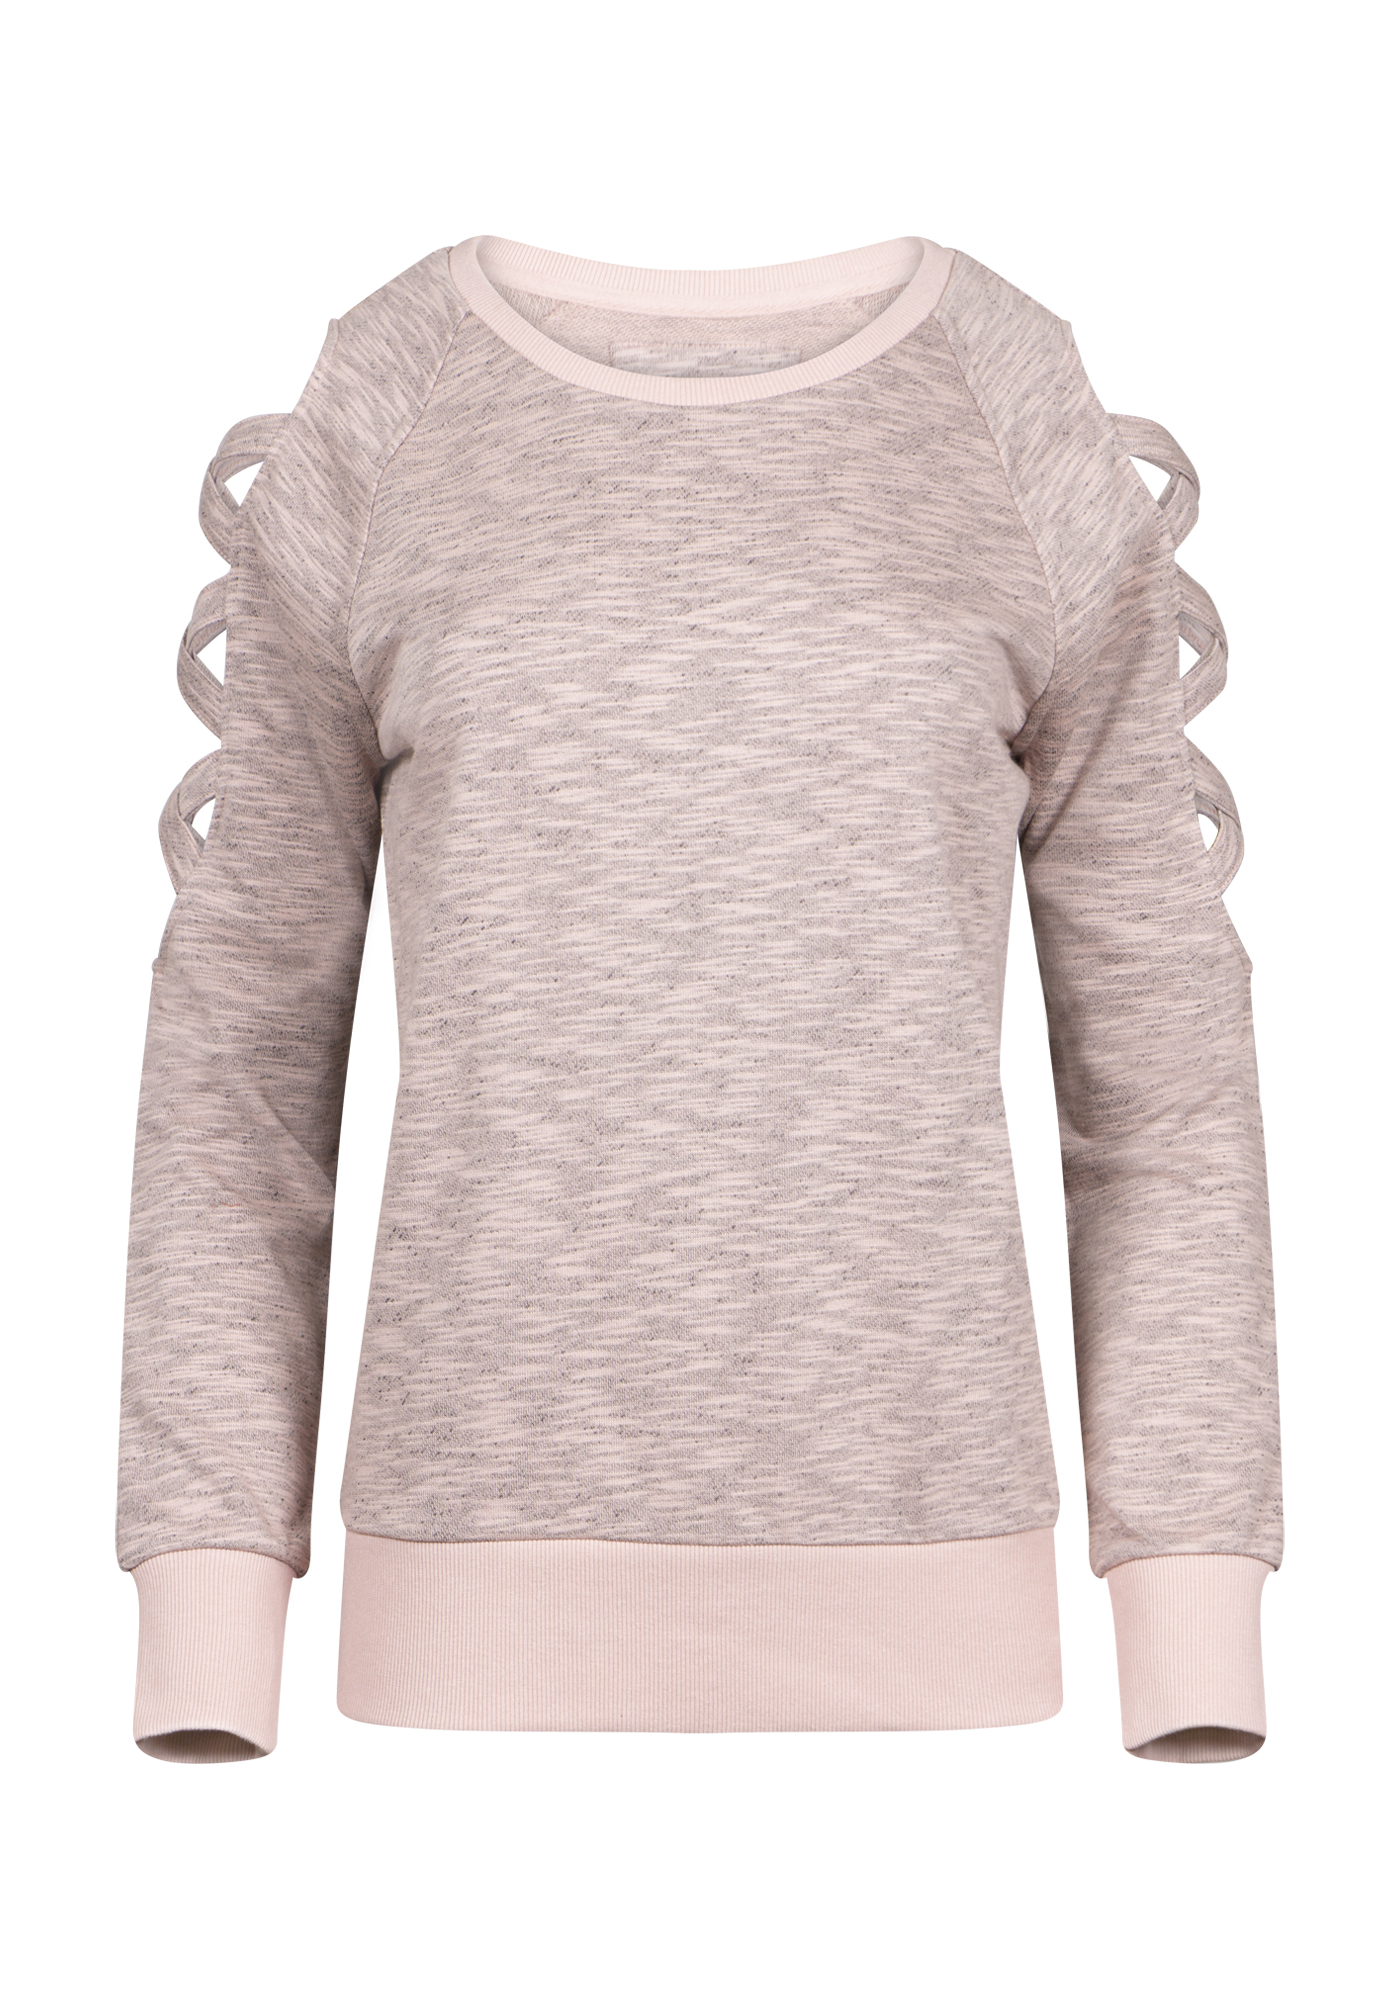 Women's Ladder Sleeve Fleece, DUSTY PINK, hi-res